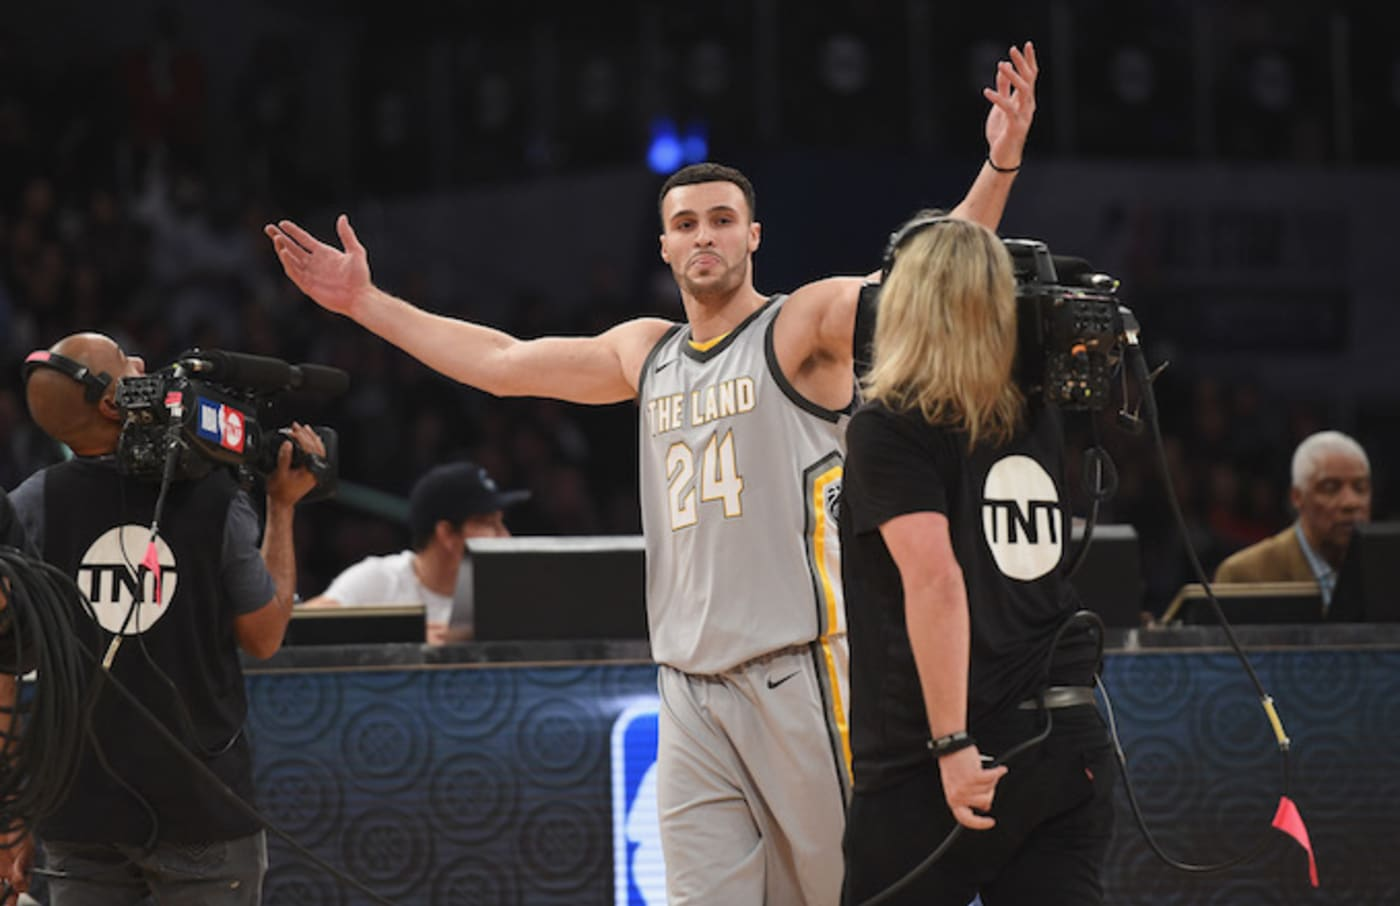 Larry Nance Jr. competiting in the Slam Dunk Contest.